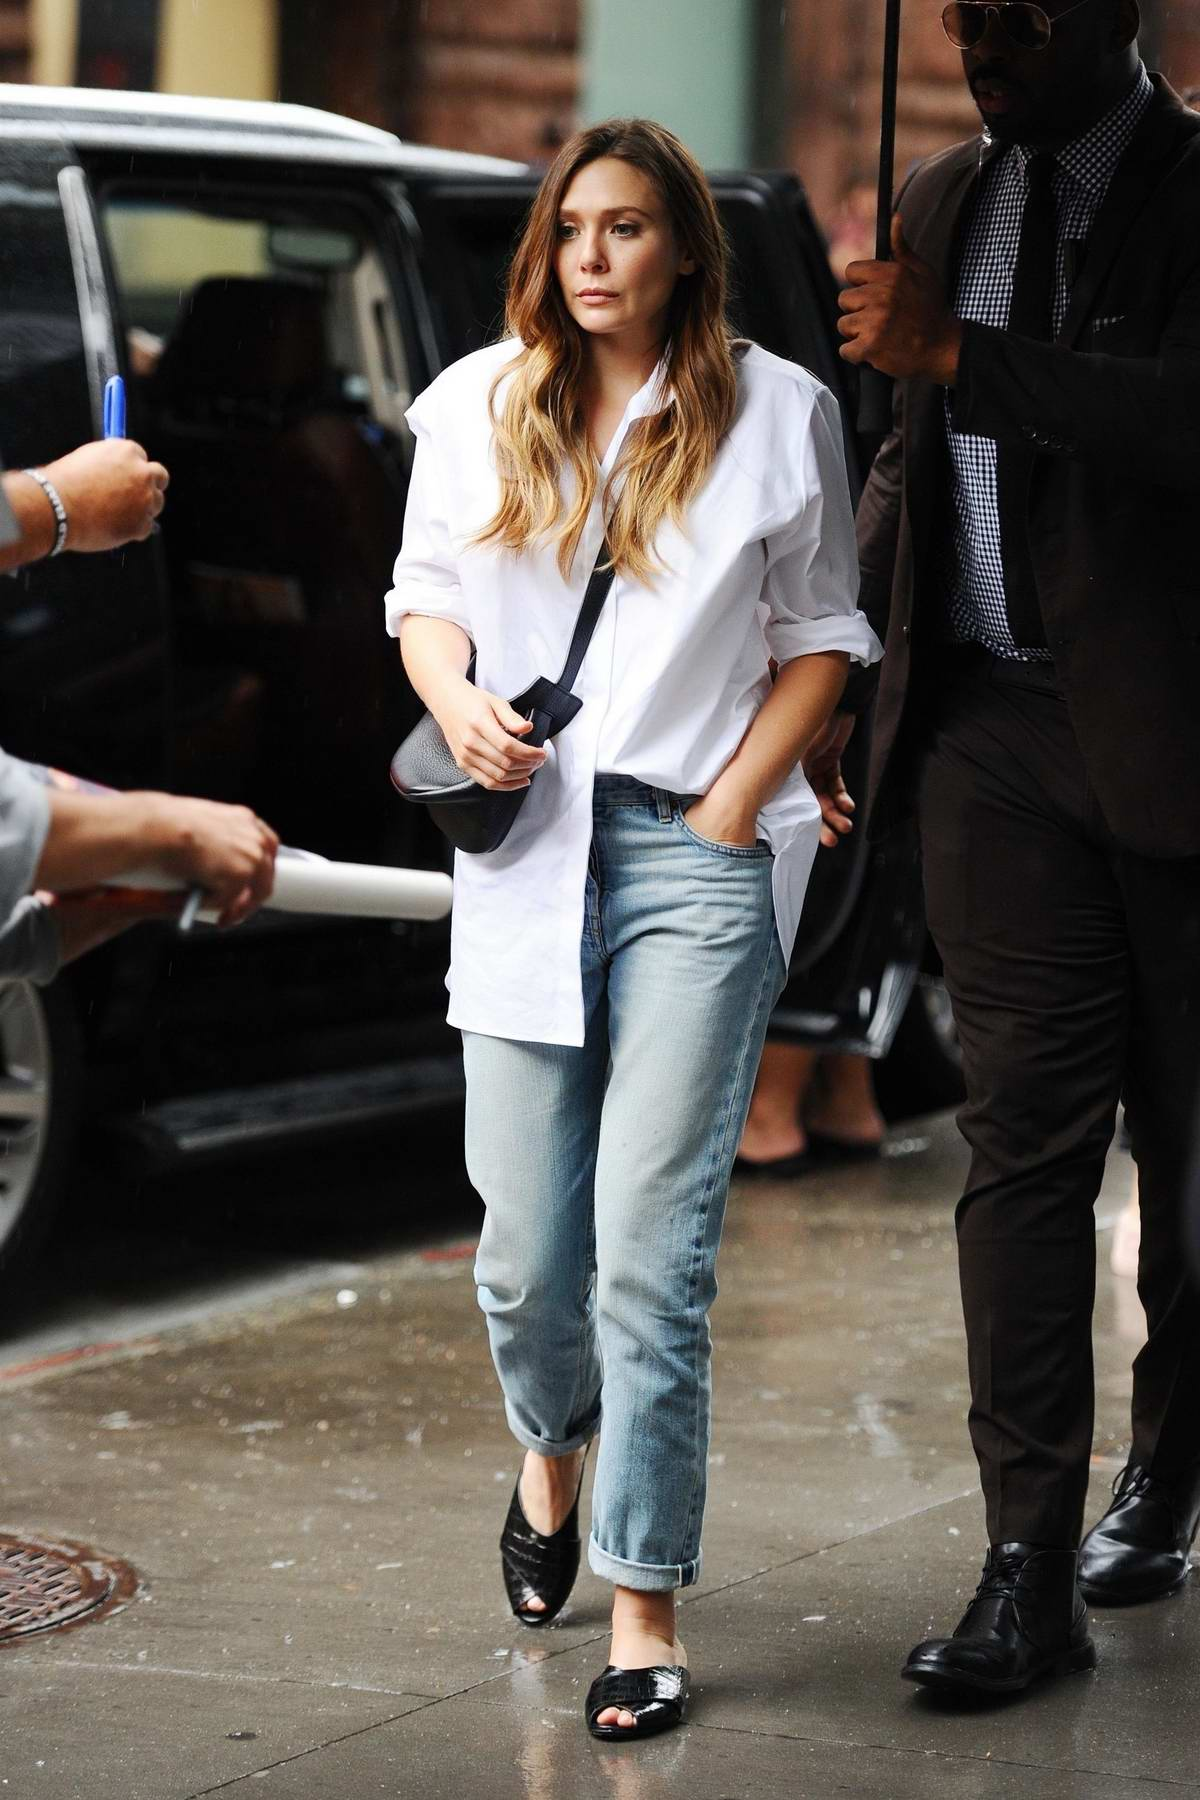 Elizabeth Olsen greets fans waiting in the rain at 'The Late Show With Stephen Colbert' in New York City